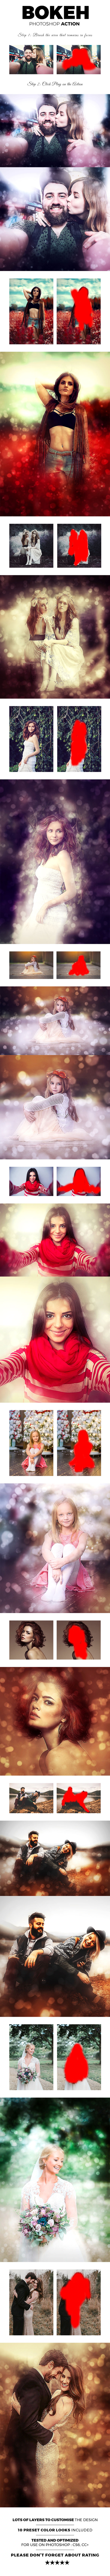 GraphicRiver Bokeh Photoshop Action 21011226